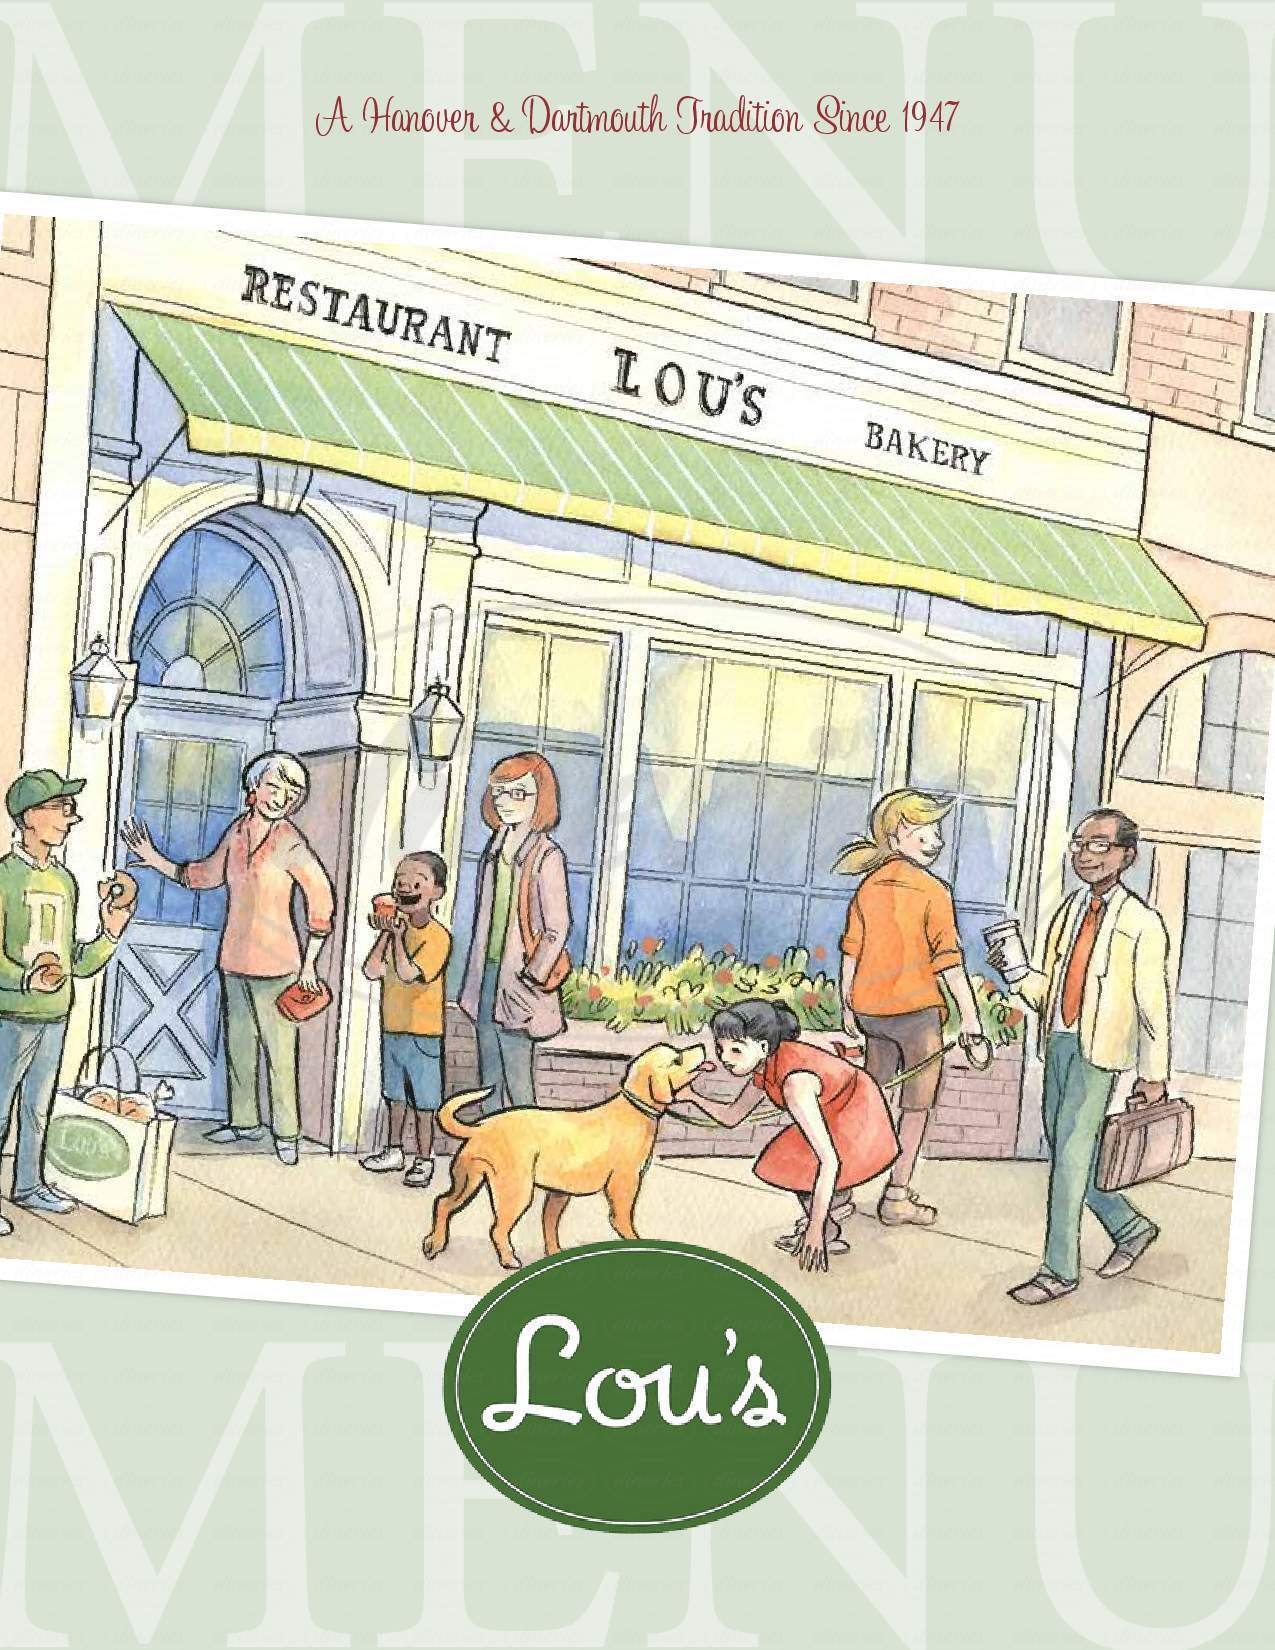 menu for Lou's Restaurant